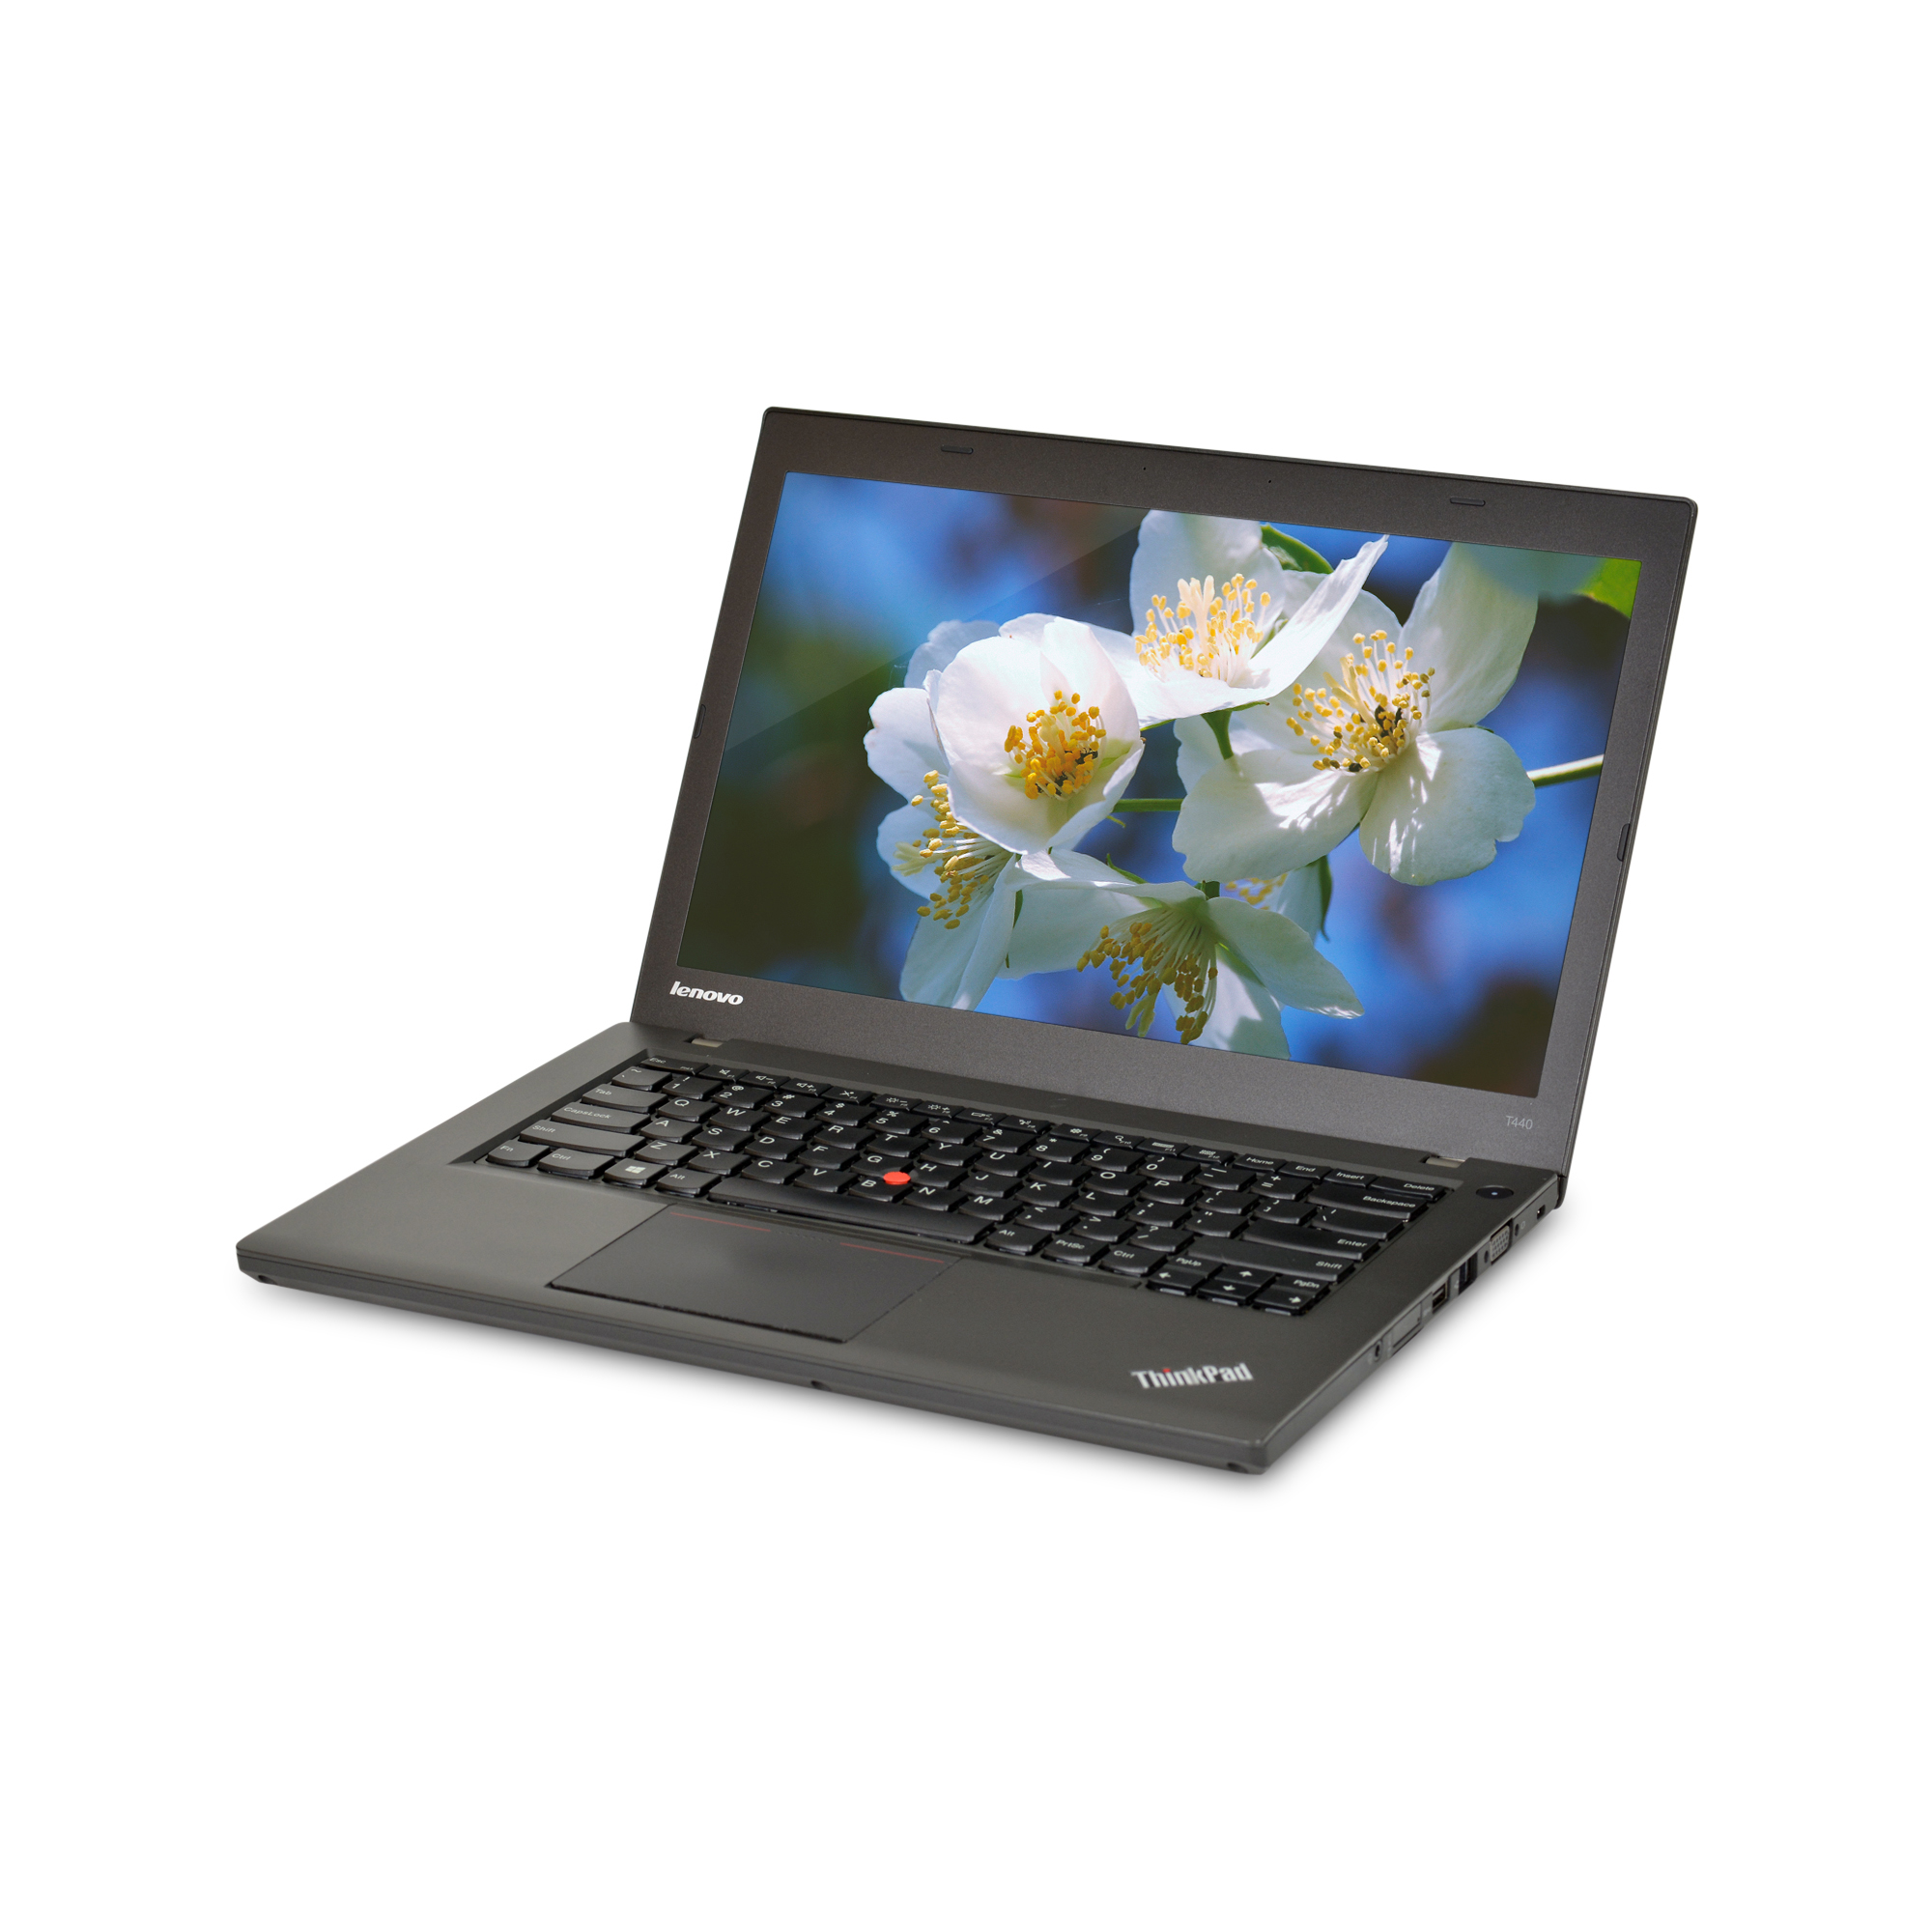 Refurbished Lenovo Thinkpad T440